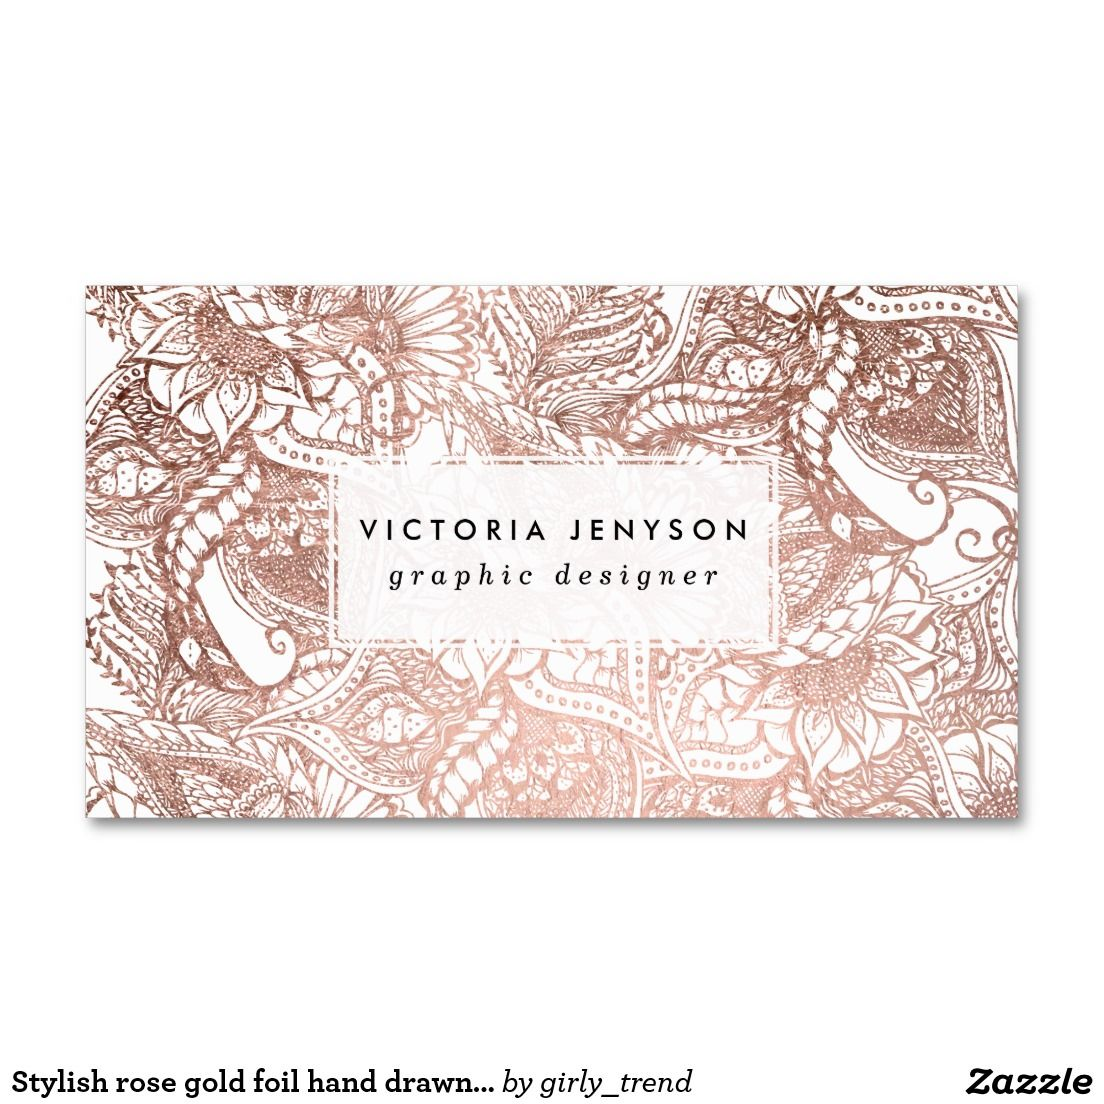 Stylish rose gold foil hand drawn floral pattern business card stylish rose gold foil hand drawn floral pattern business card magicingreecefo Images